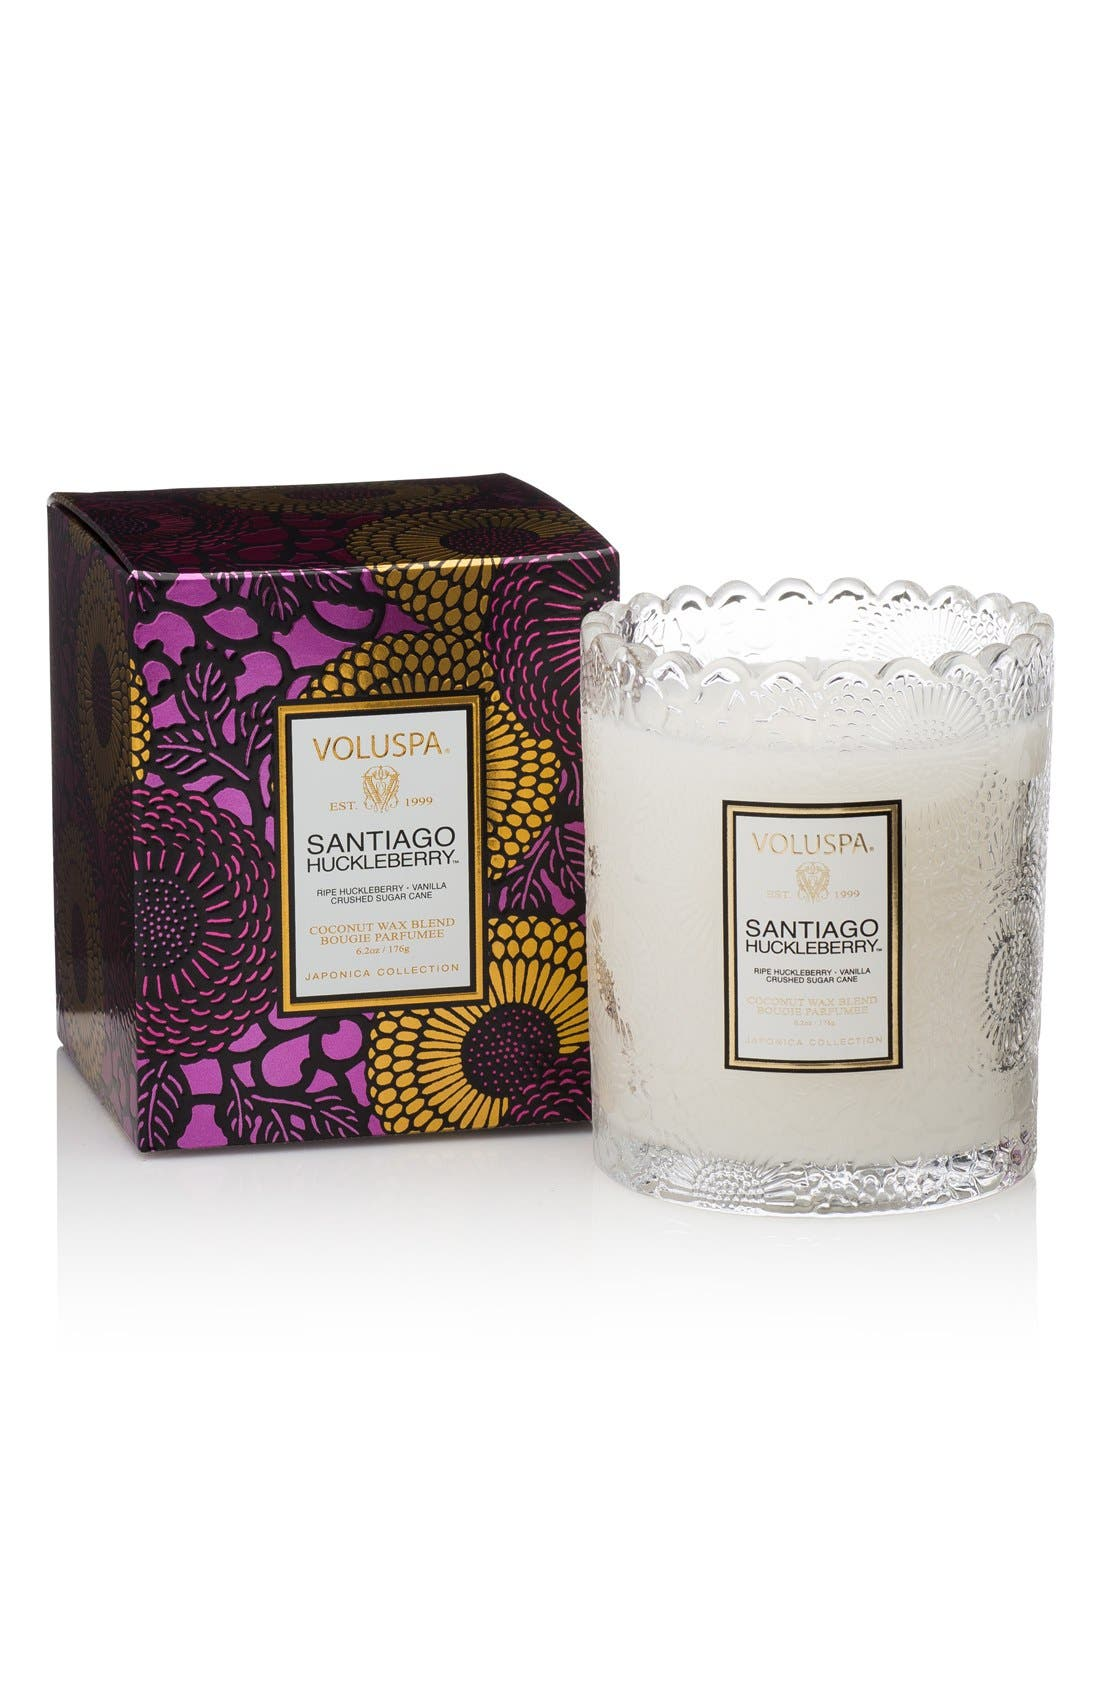 Japonica Santiago Huckleberry Scalloped Edge Embossed Glass Candle,                             Main thumbnail 1, color,                             NO COLOR